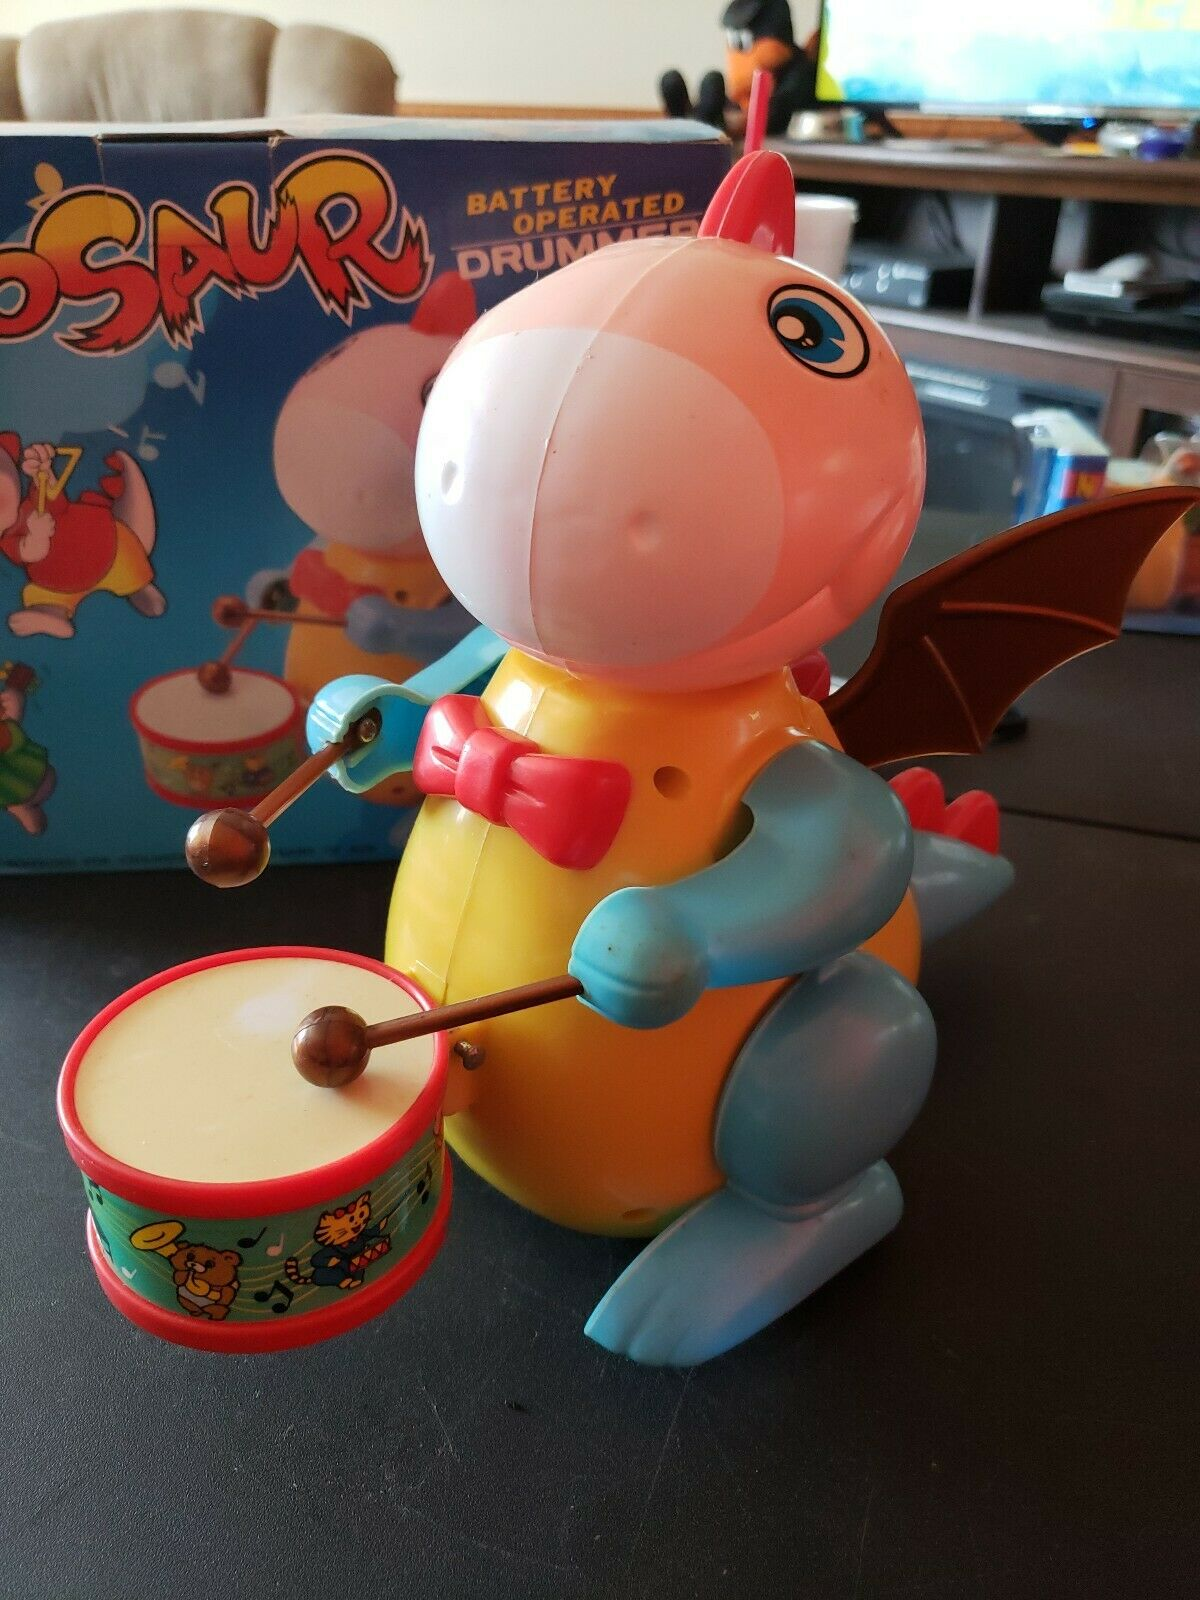 Funny Dinosaur Battery Operated Drummer Bump N Go With Box KM8903